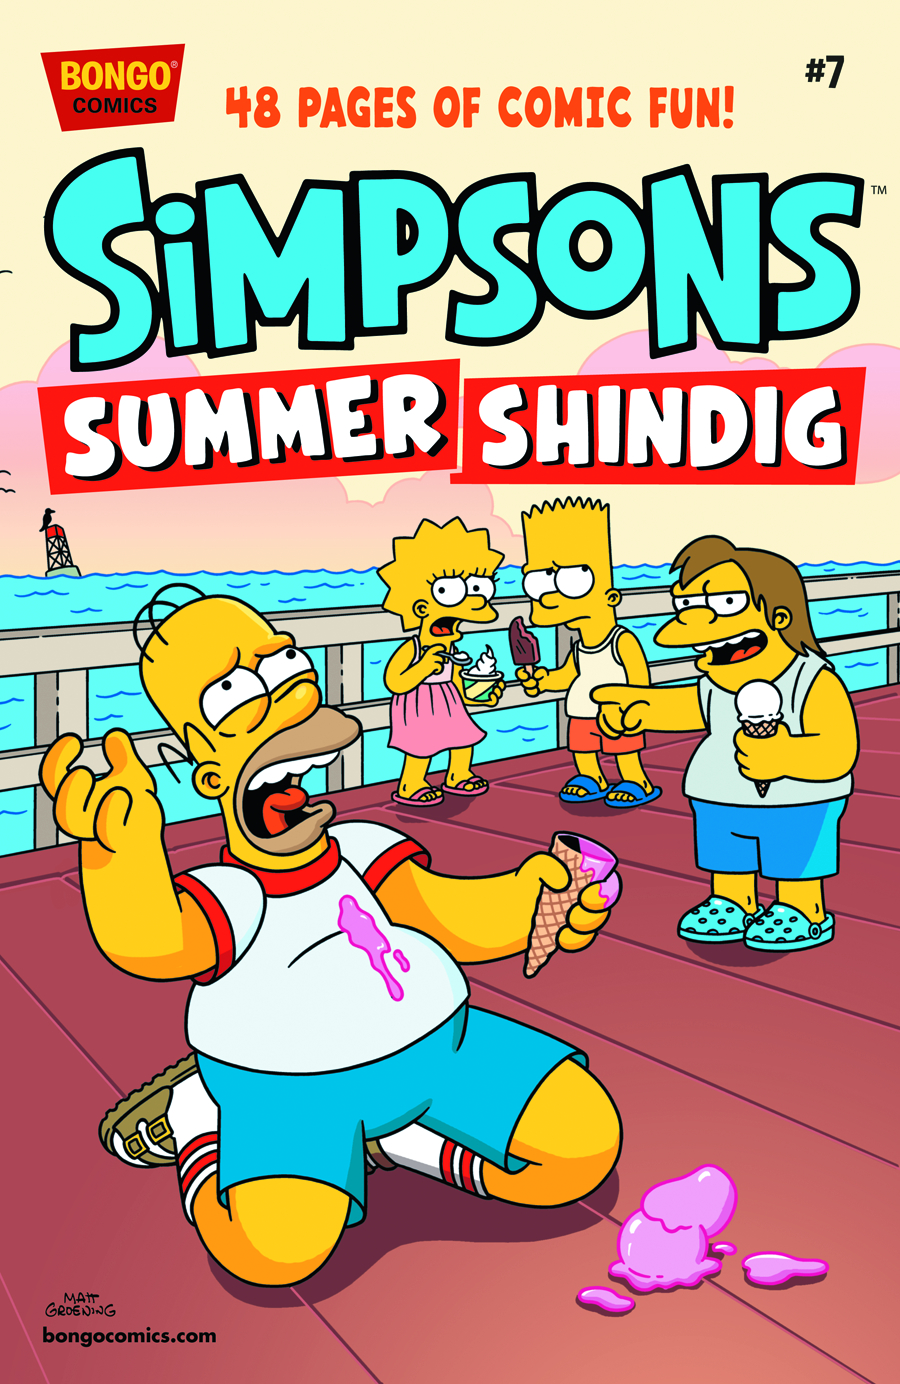 SIMPSONS SUMMER SHINDIG #7